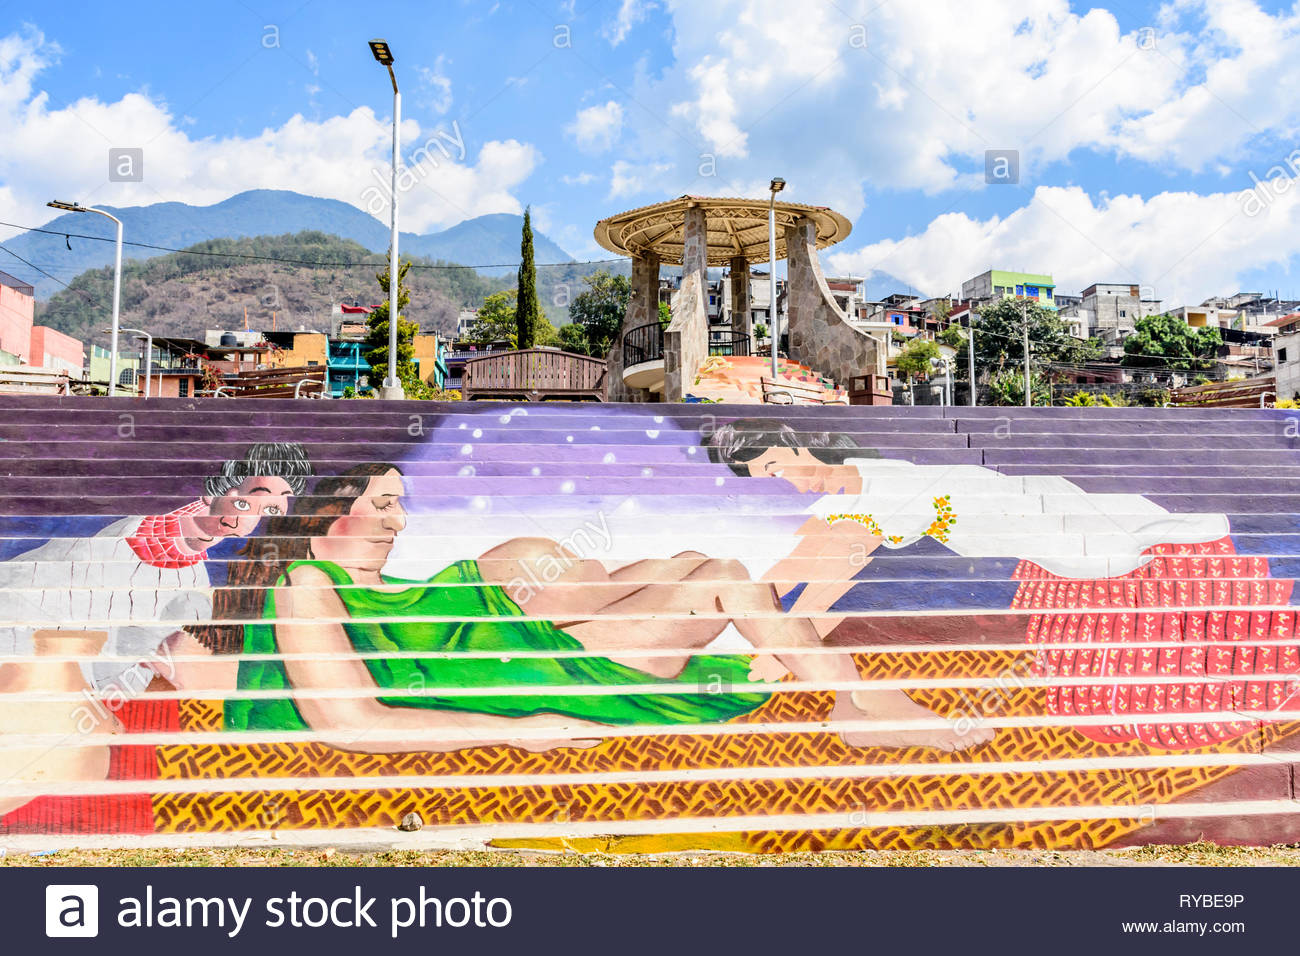 Santiago Atitlan, Lake Atitlan, Guatemala - March 8, 2019: Colorful mural of woman in childbirth by public park in largest lakeside town - Stock Image